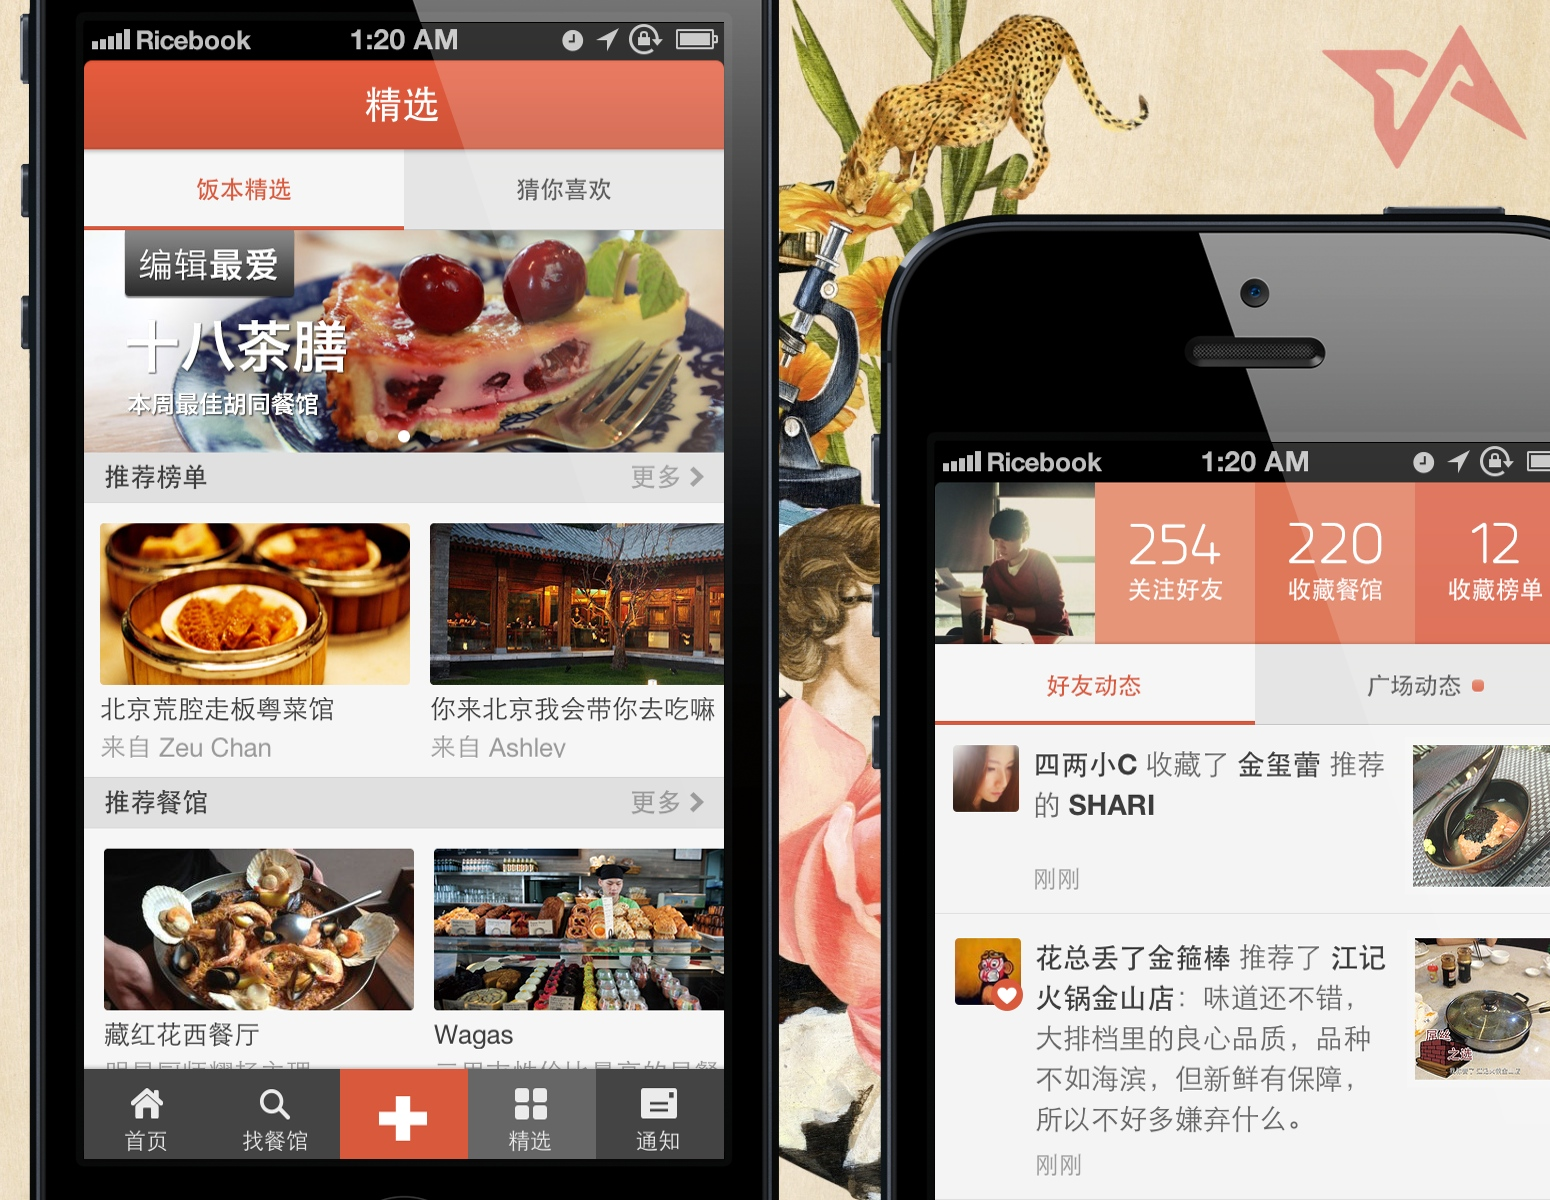 Ricebook foodie app in China